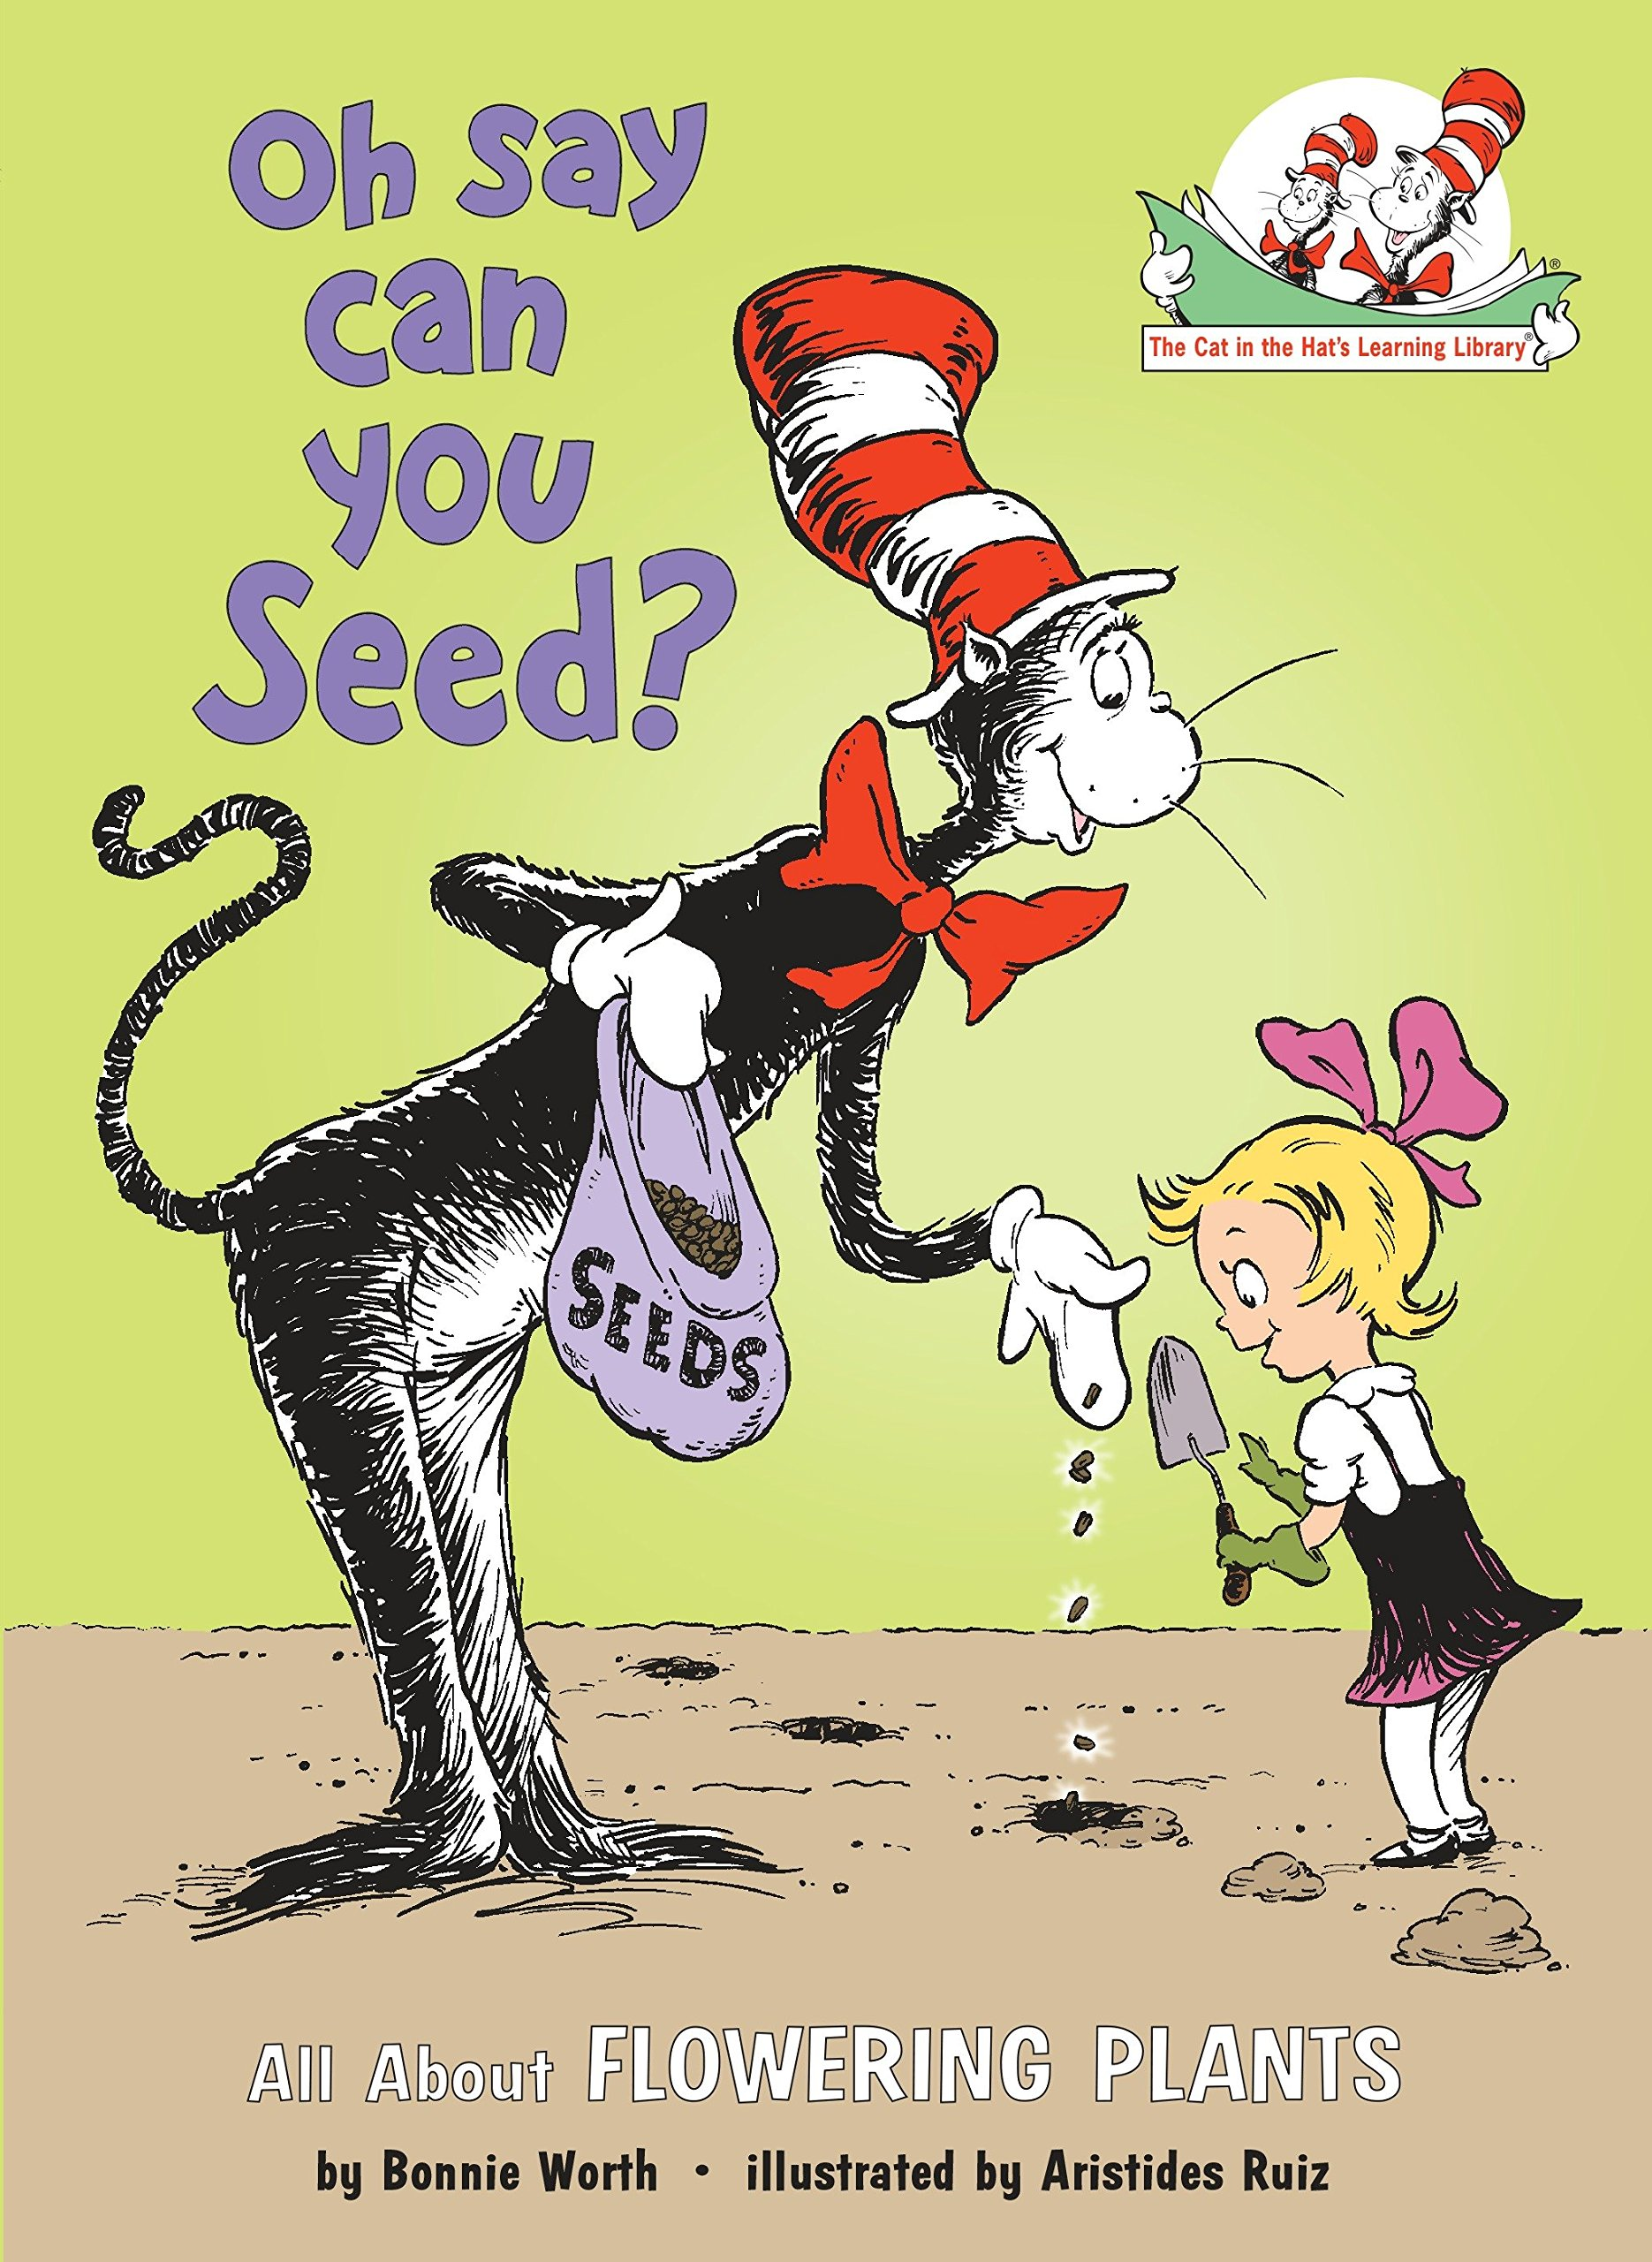 Oh Say Can You Seed - Looking for a fun way to learn about food and farming with your children? This is the first in our new series of posts sharing a list of children's booksthat will get you thinking about how food gets from the field to your table.Oh, Say Can You Seed? by Bonnie Worth is a picture book that tracks the seed to plant. Here's the scoop on the story from Amazon.com.With the able assistance of Thing 1 and Thing 2 — and a fleet of Rube Goldbergian vehicles — the Cat in the Hat examines the various parts of plants, seeds, and flowers; basic photosynthesis and pollination; and seed dispersal.